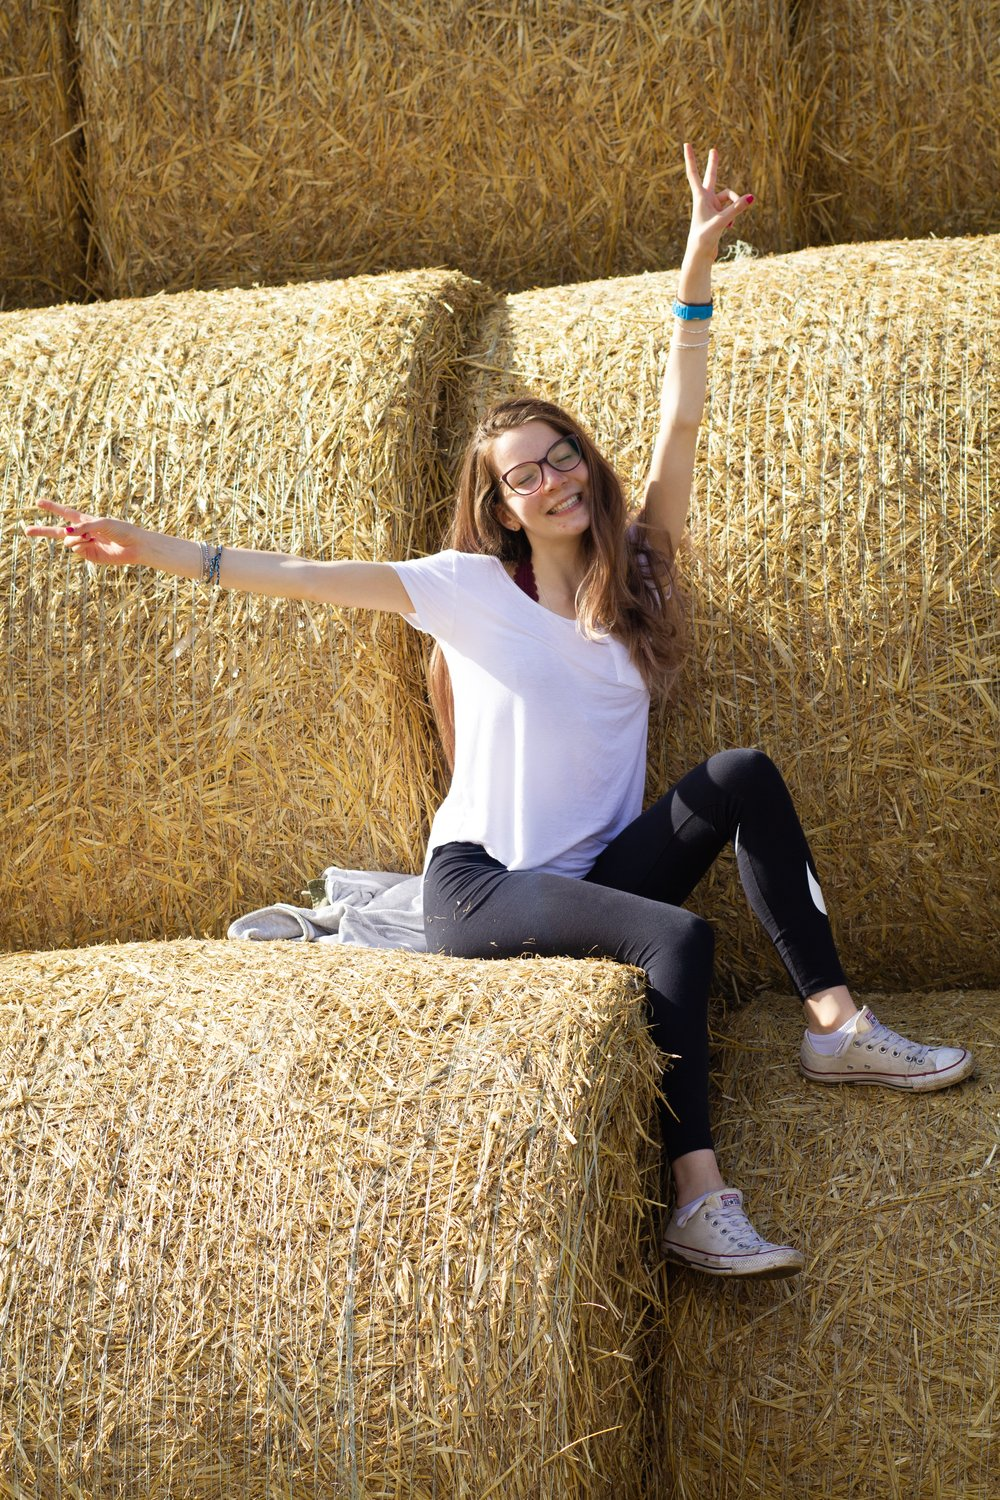 10th August - hey it's hay!